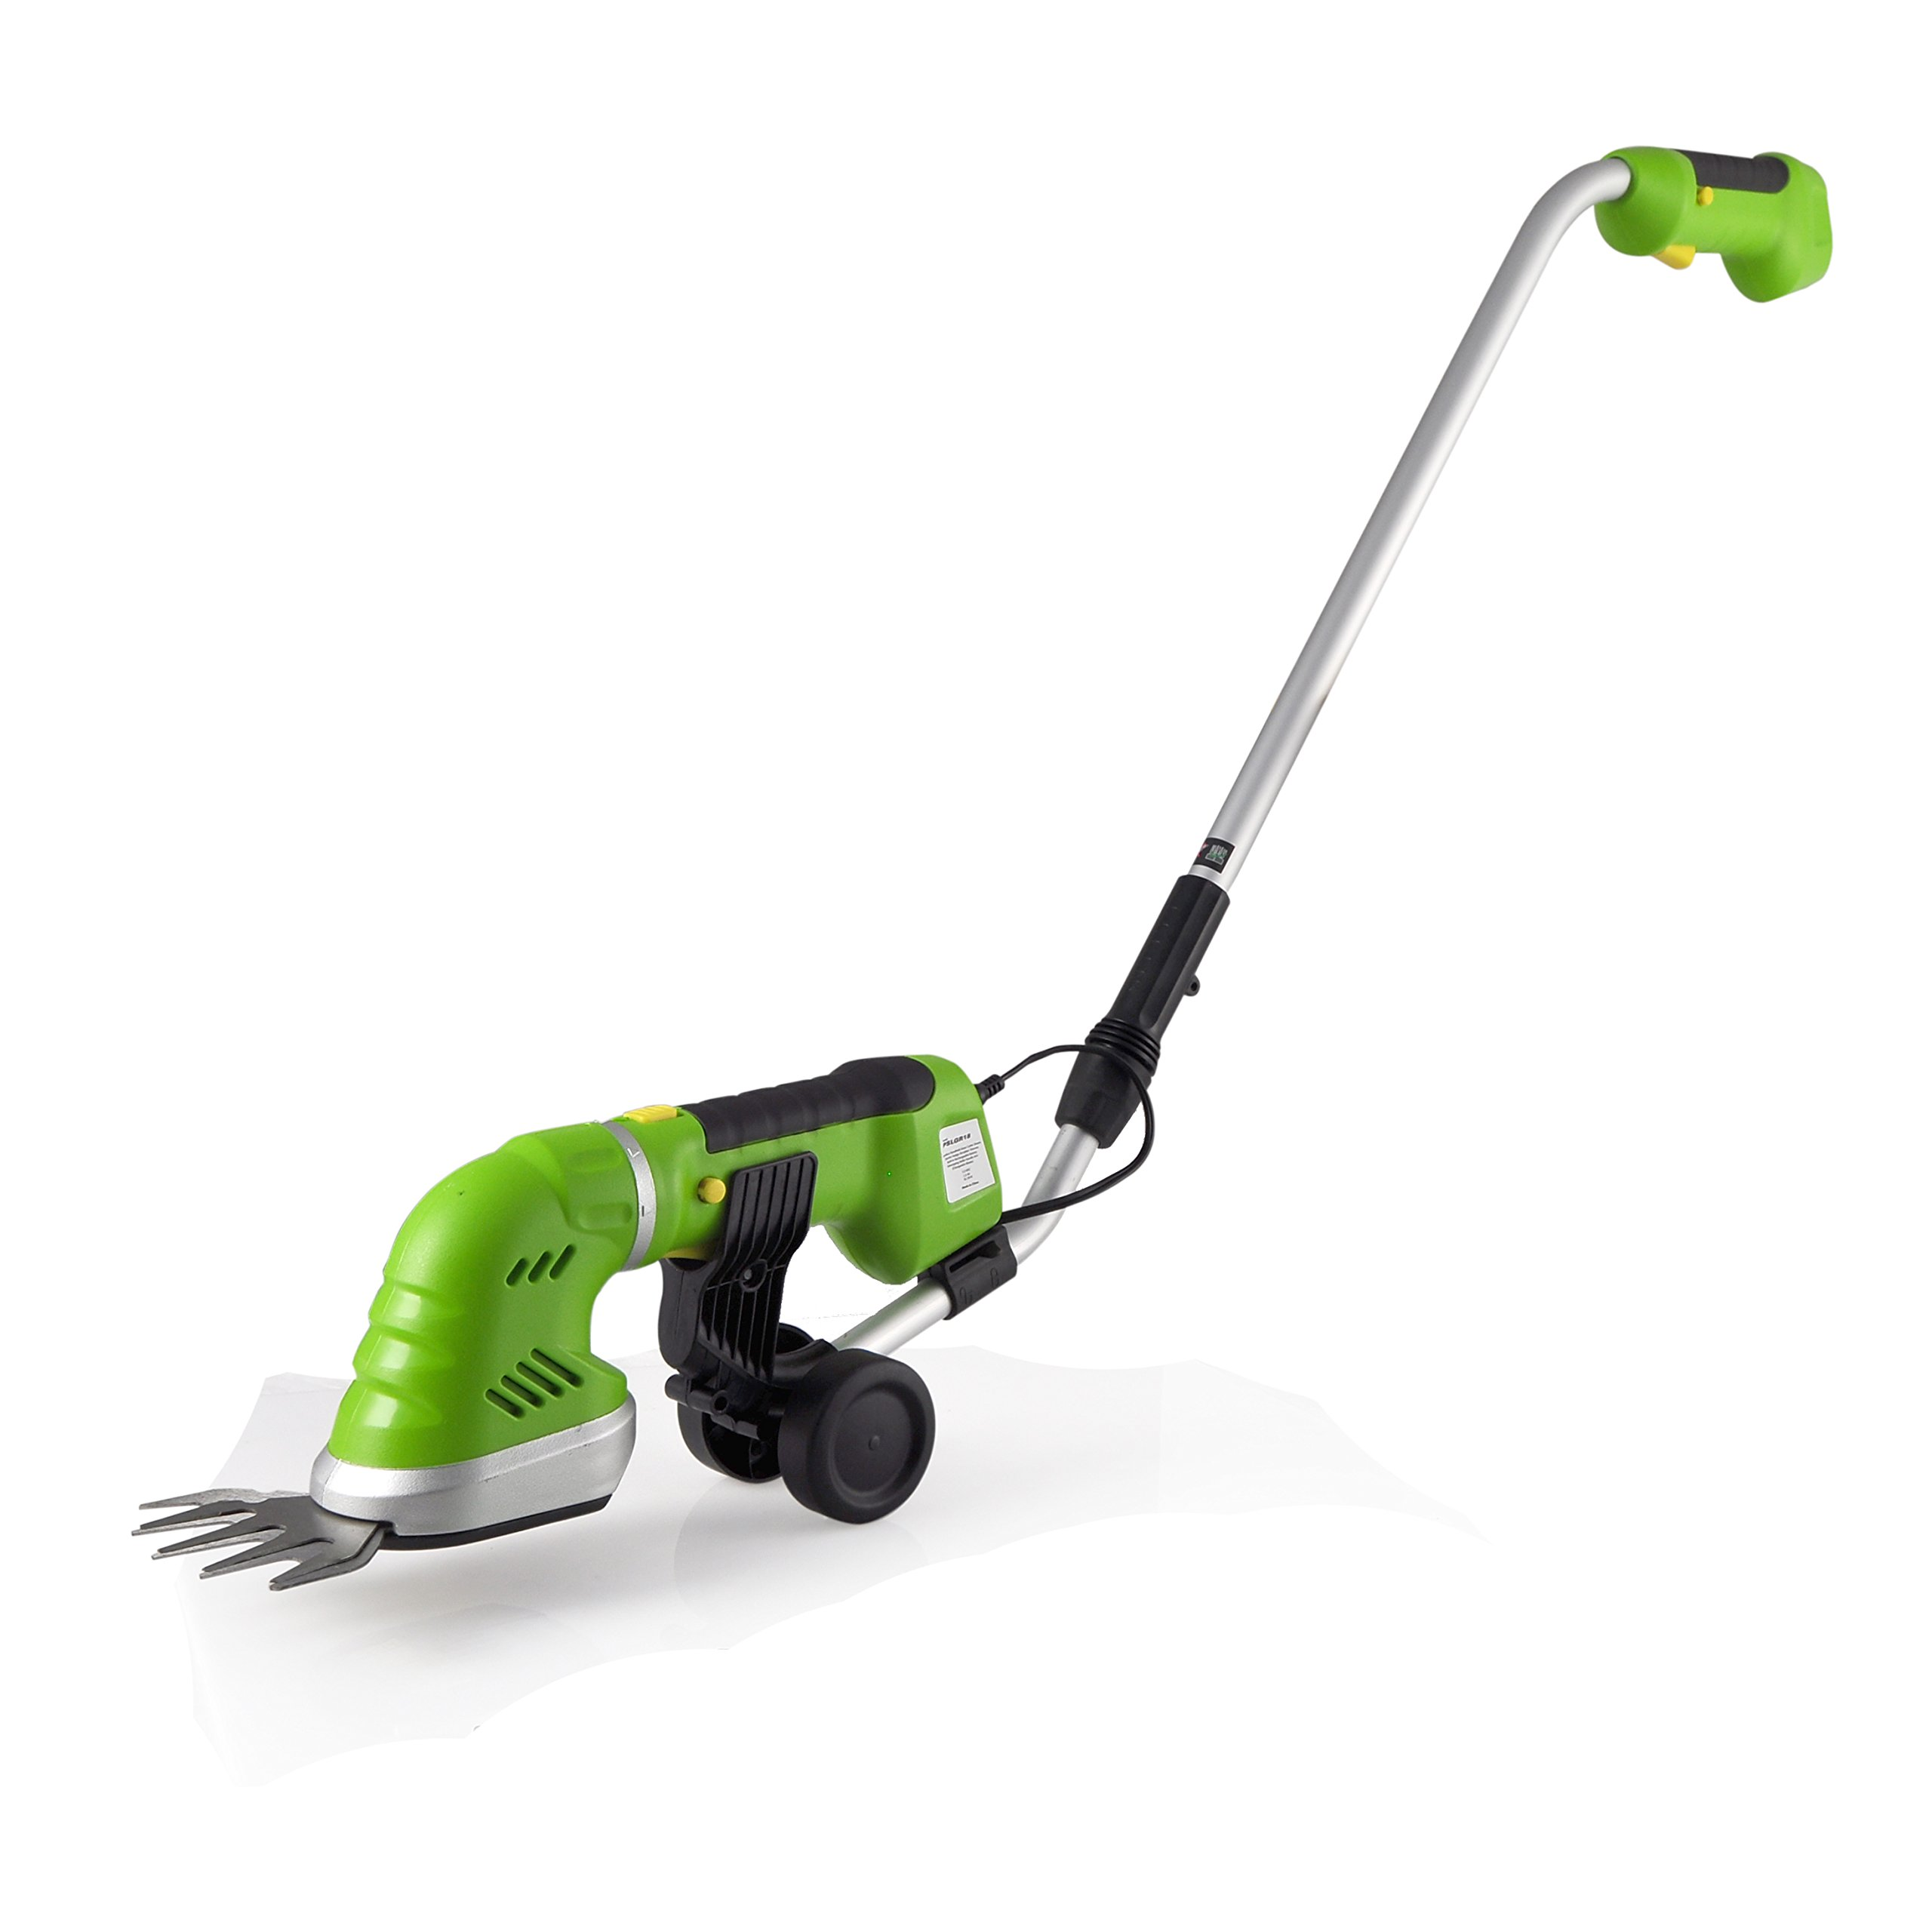 SereneLife AZPSLGR18 Cordless Handheld Grass Cutter Shears